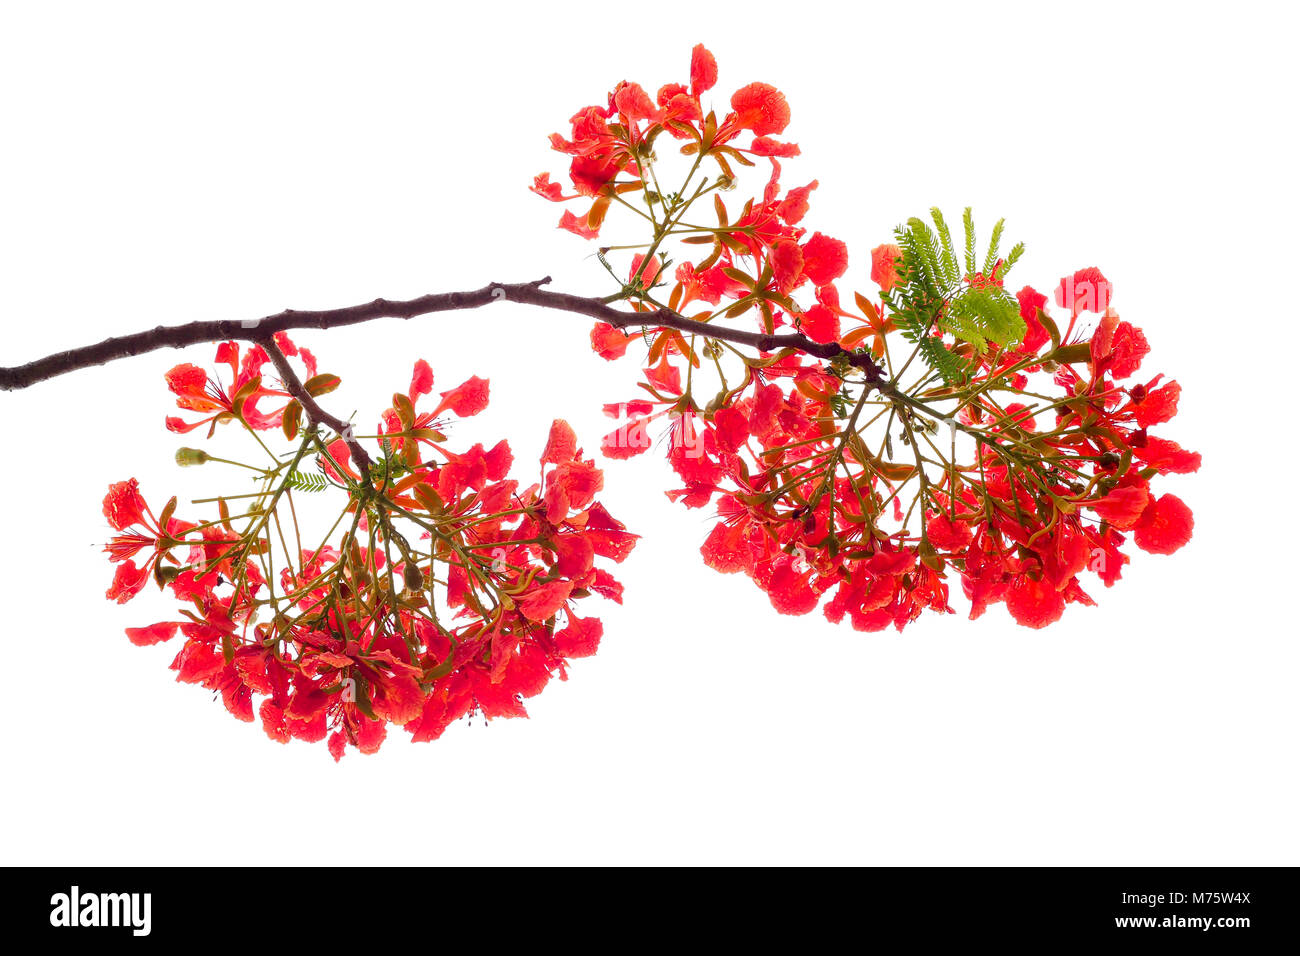 royal poinciana flower , red flower isolated on white background - Stock Image